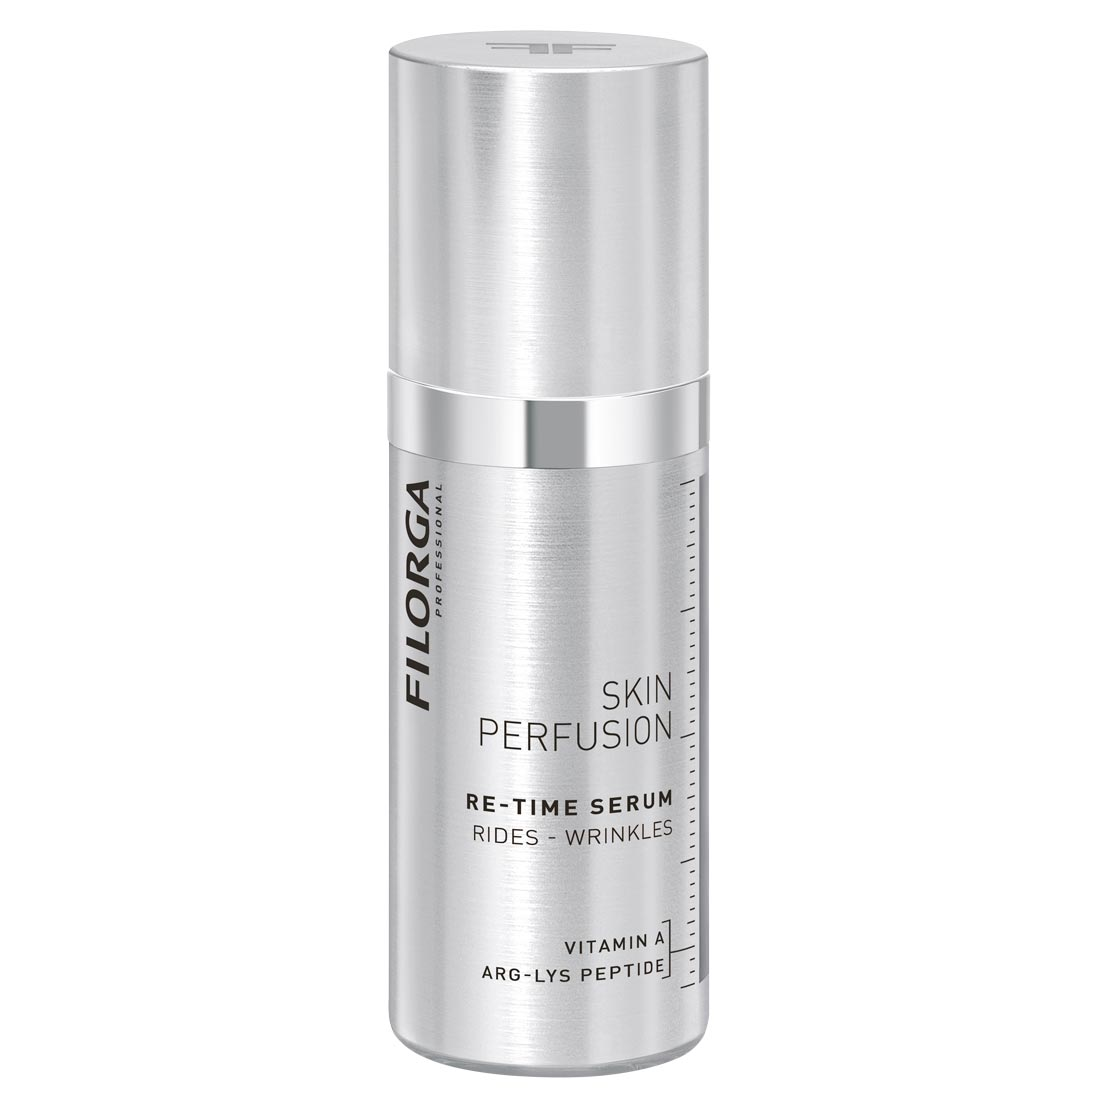 SKIN PERFUSION RE-TIME SERUM 1